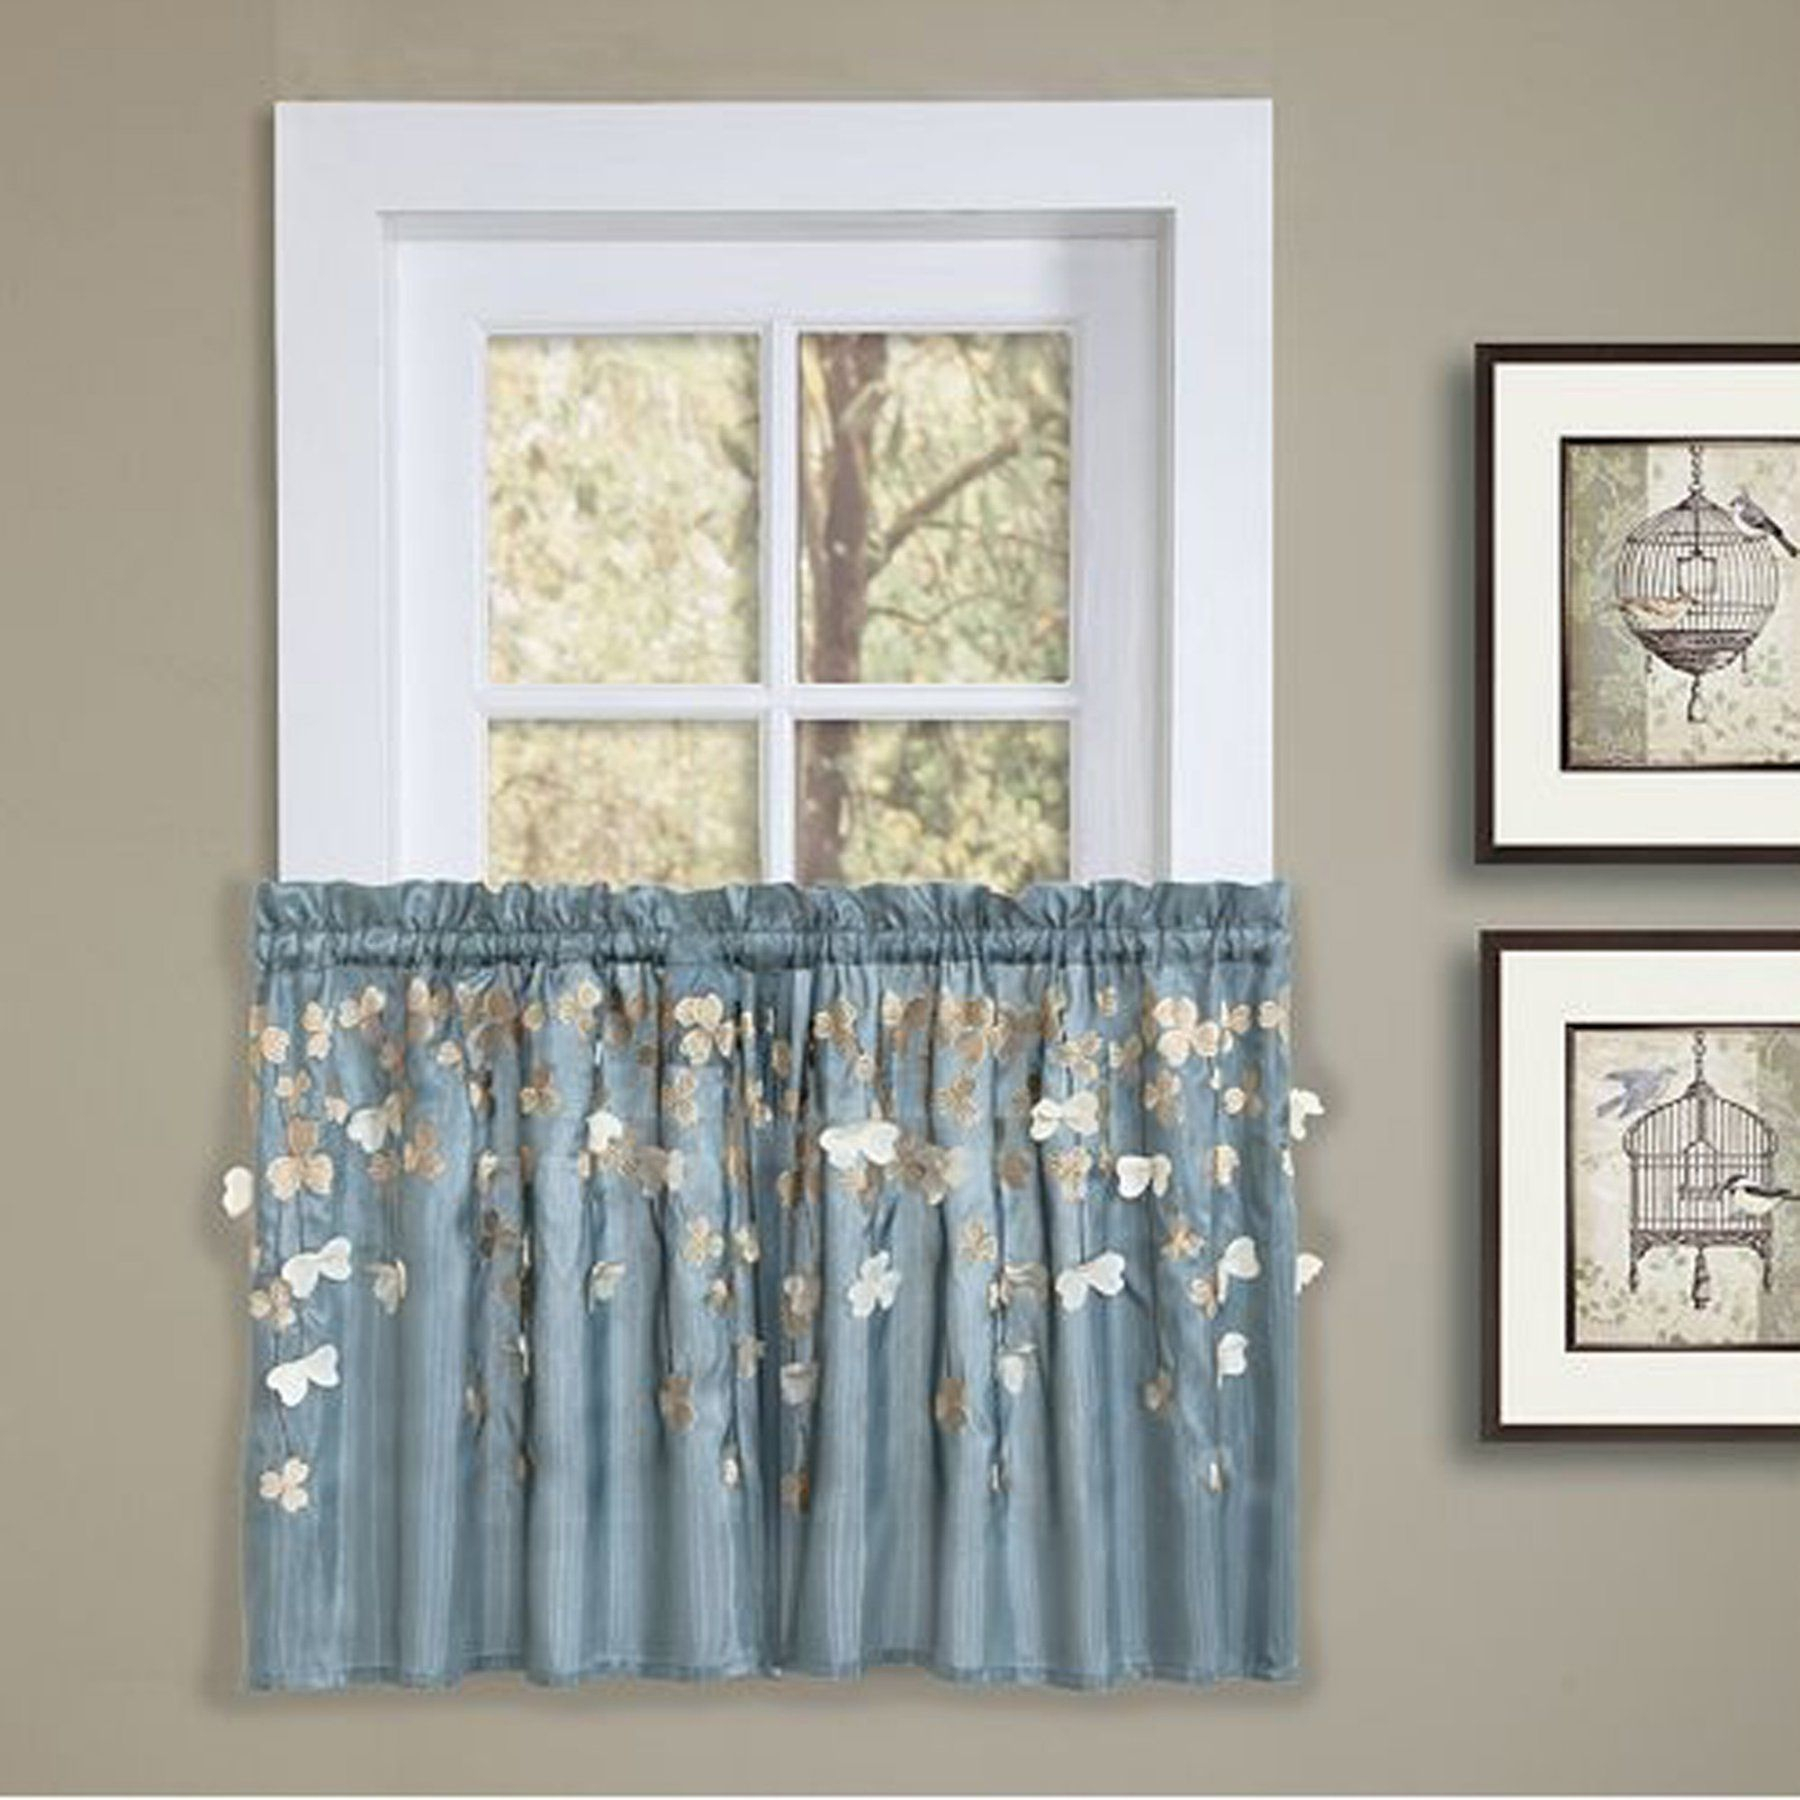 Lush Decor Flower Drops Kitchen Tiers Pair – C10754P13 000 For Semi Sheer Rod Pocket Kitchen Curtain Valance And Tiers Sets (View 11 of 20)